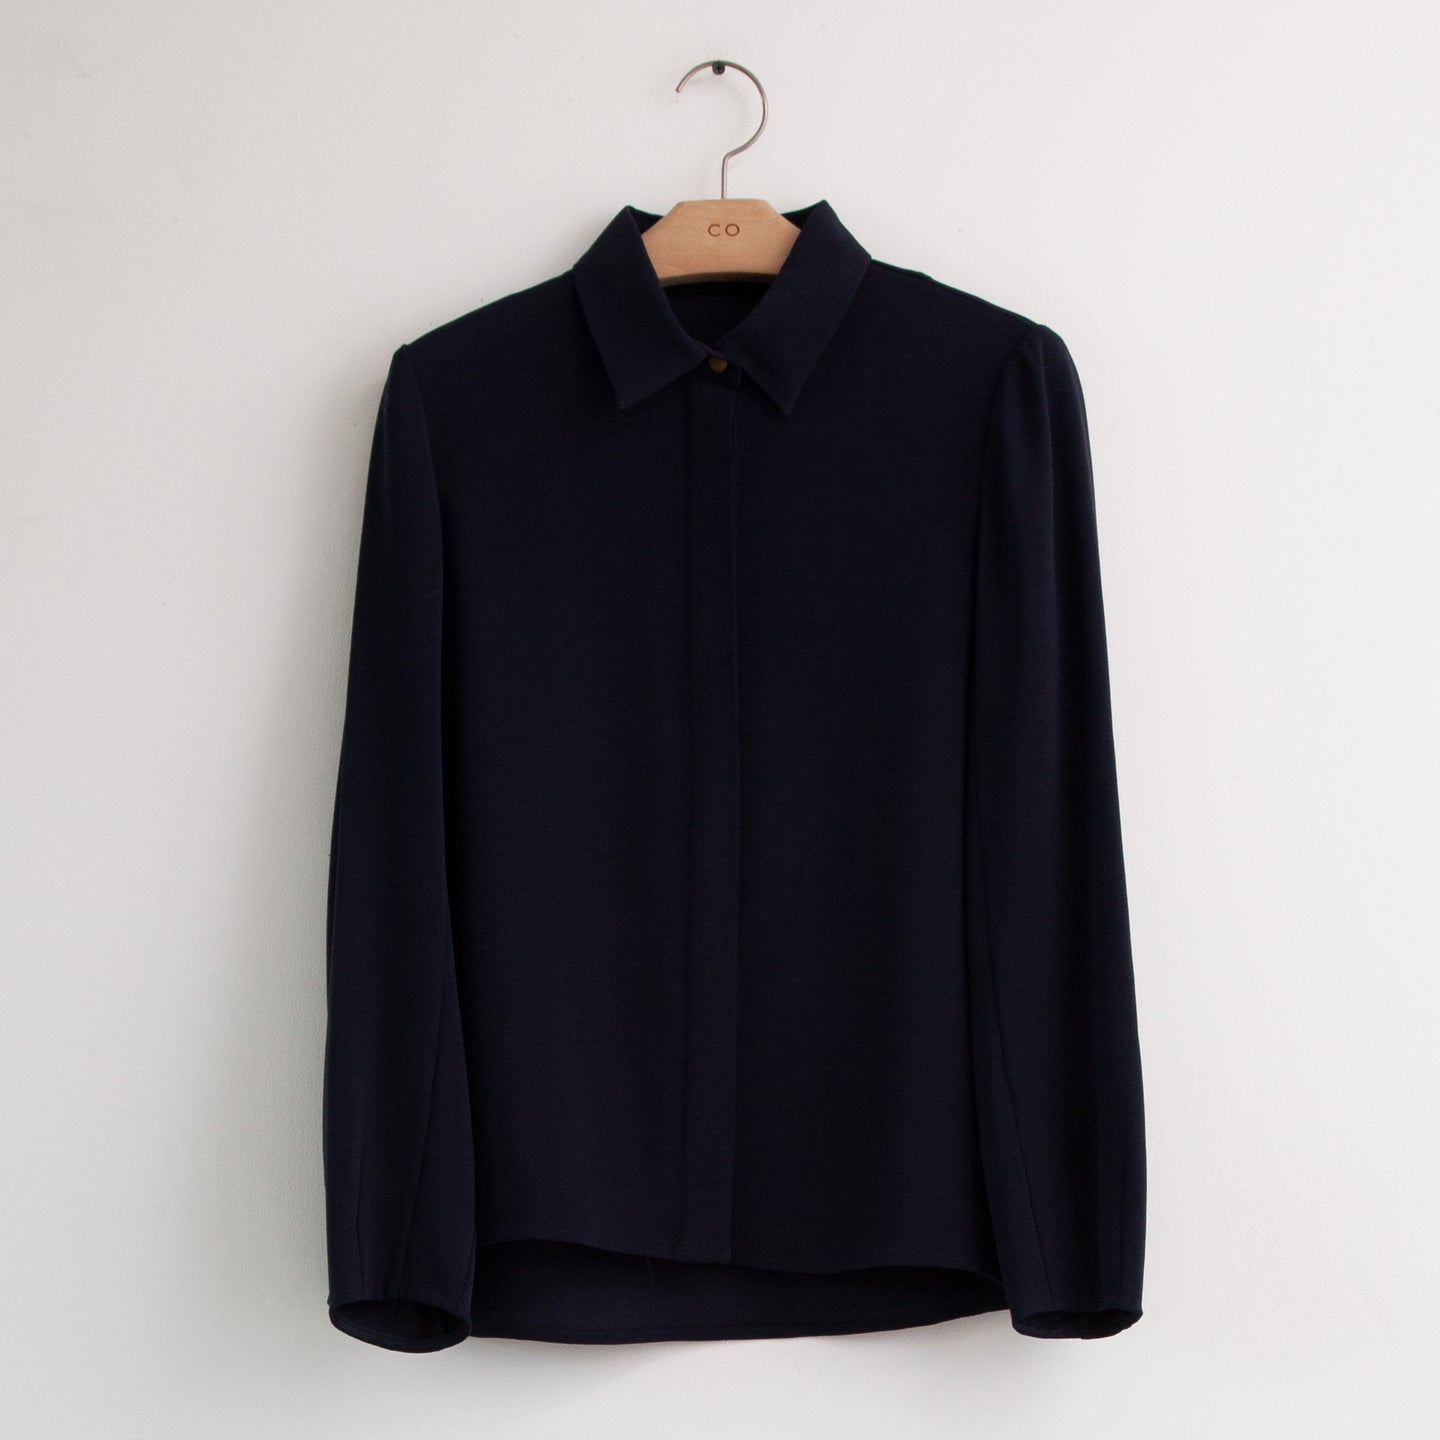 Long sleeve button front covered placket blouse in navy silk - CO